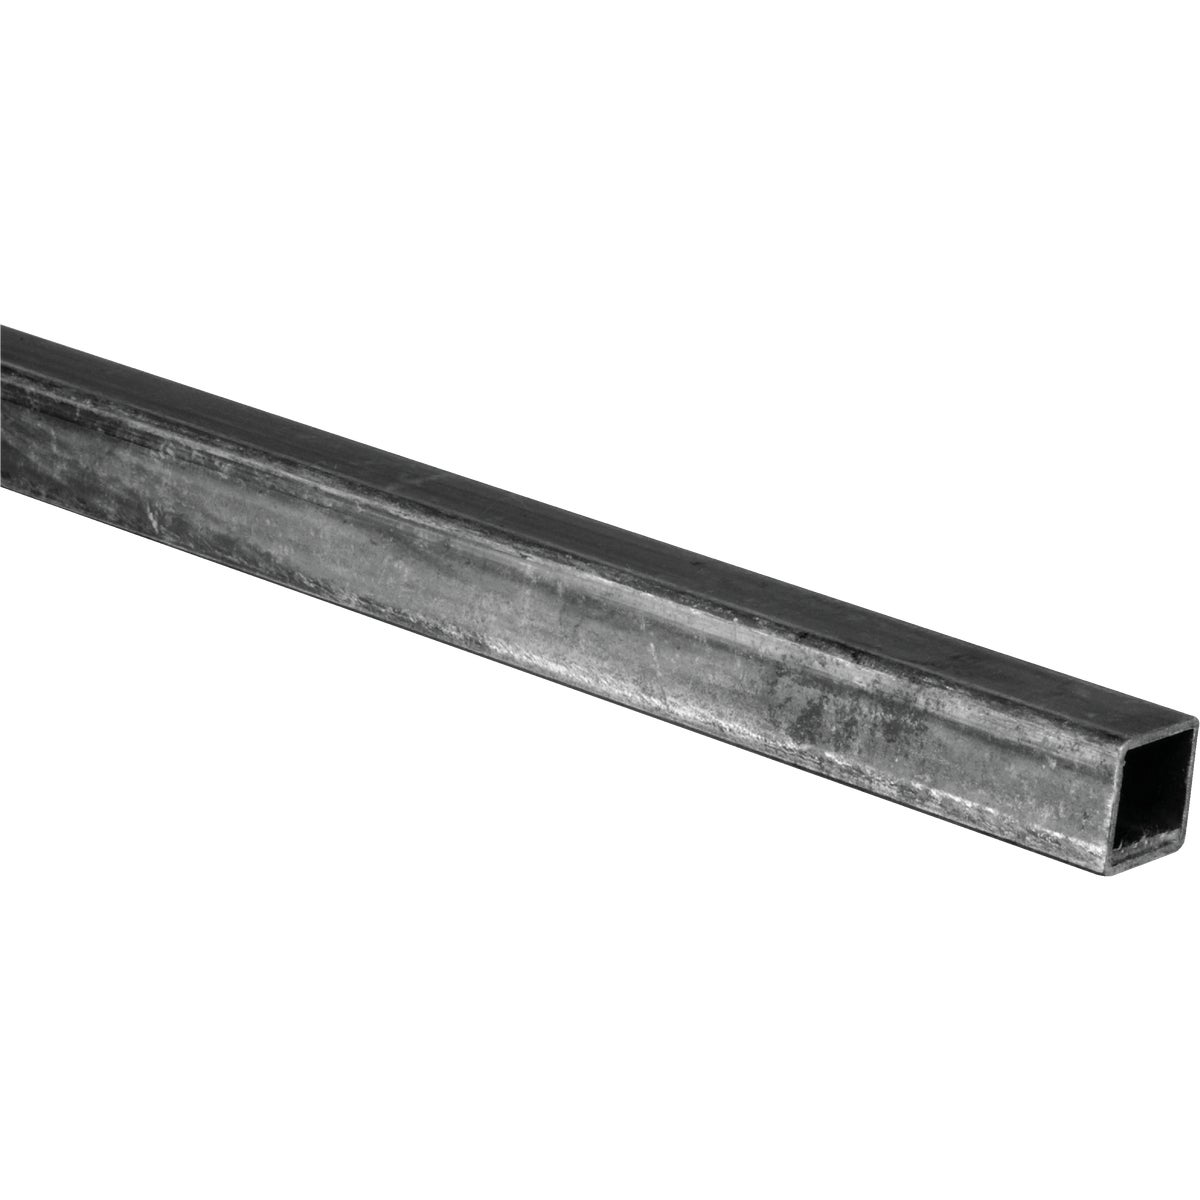 1X6' SQUARE TUBE - N301101 by National Mfg Co